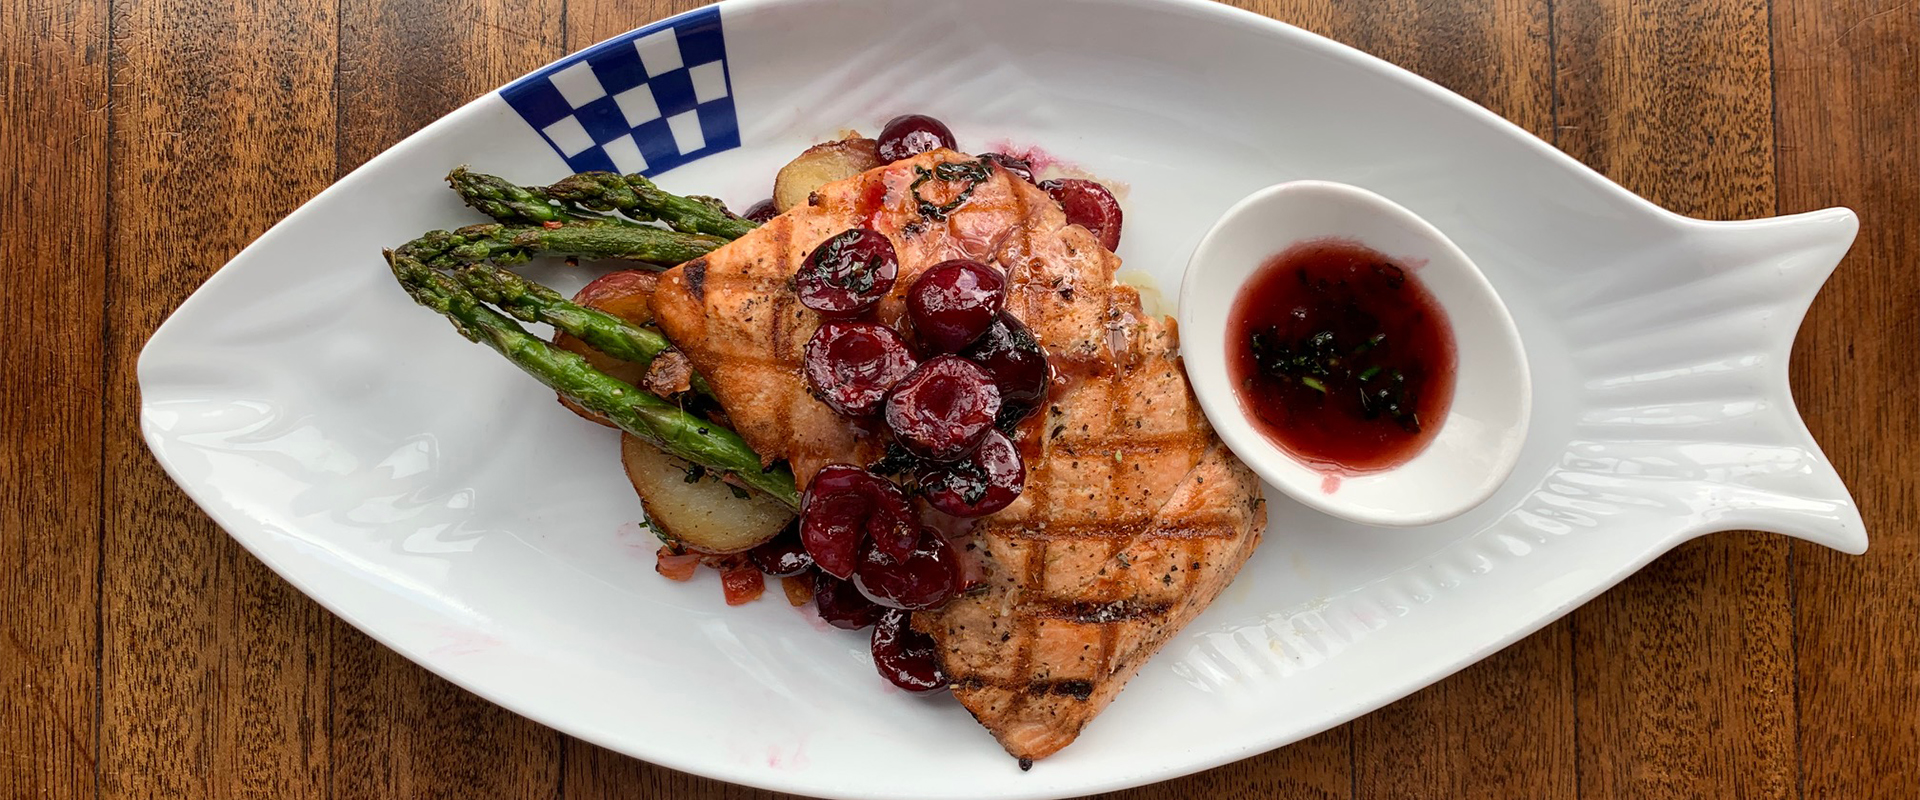 Dukes Salmon with Cherries and Asparagus